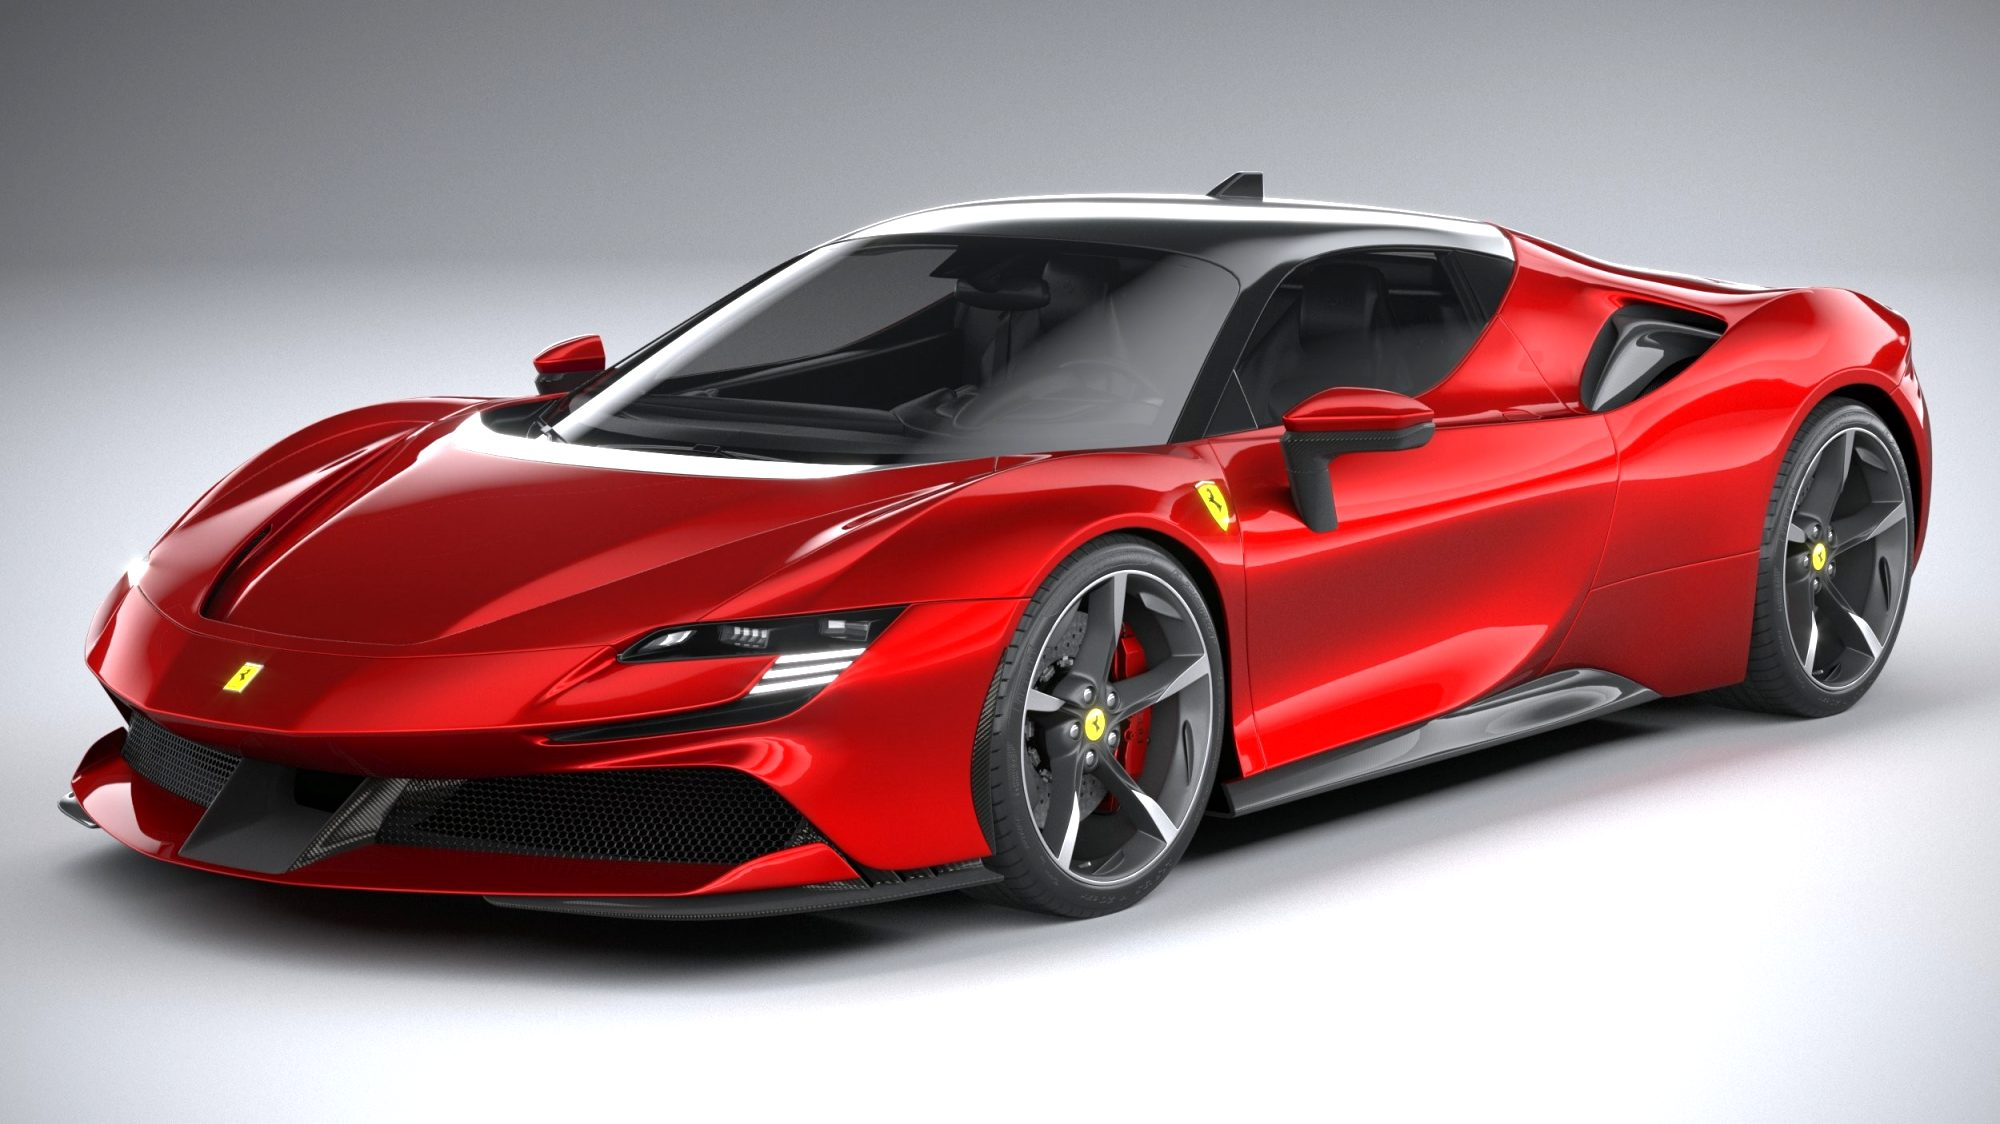 2021 ferrari price usd Review and Release date